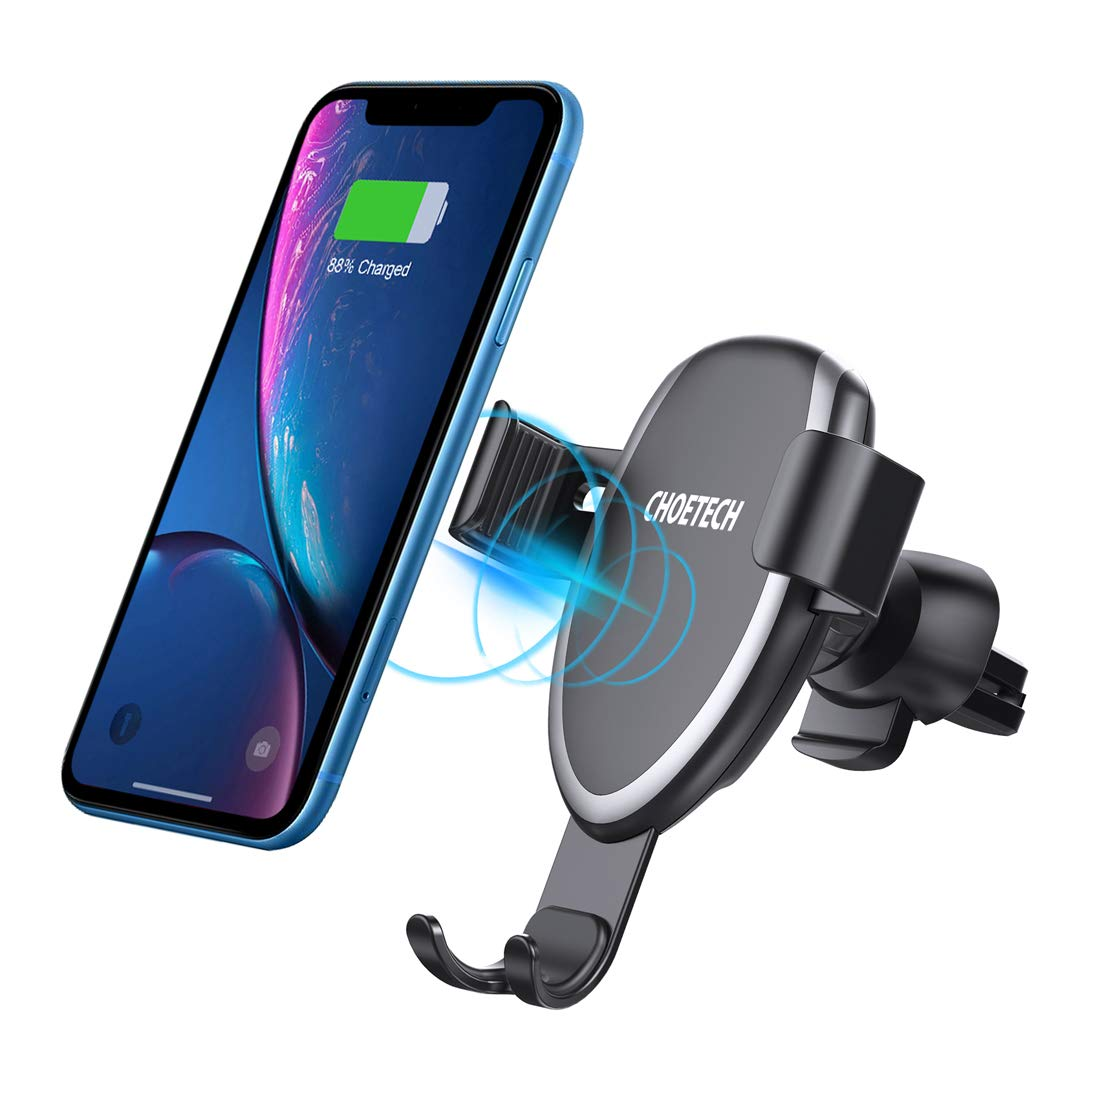 CHOETECH 7.5W Fast Wireless Car Charger Mount